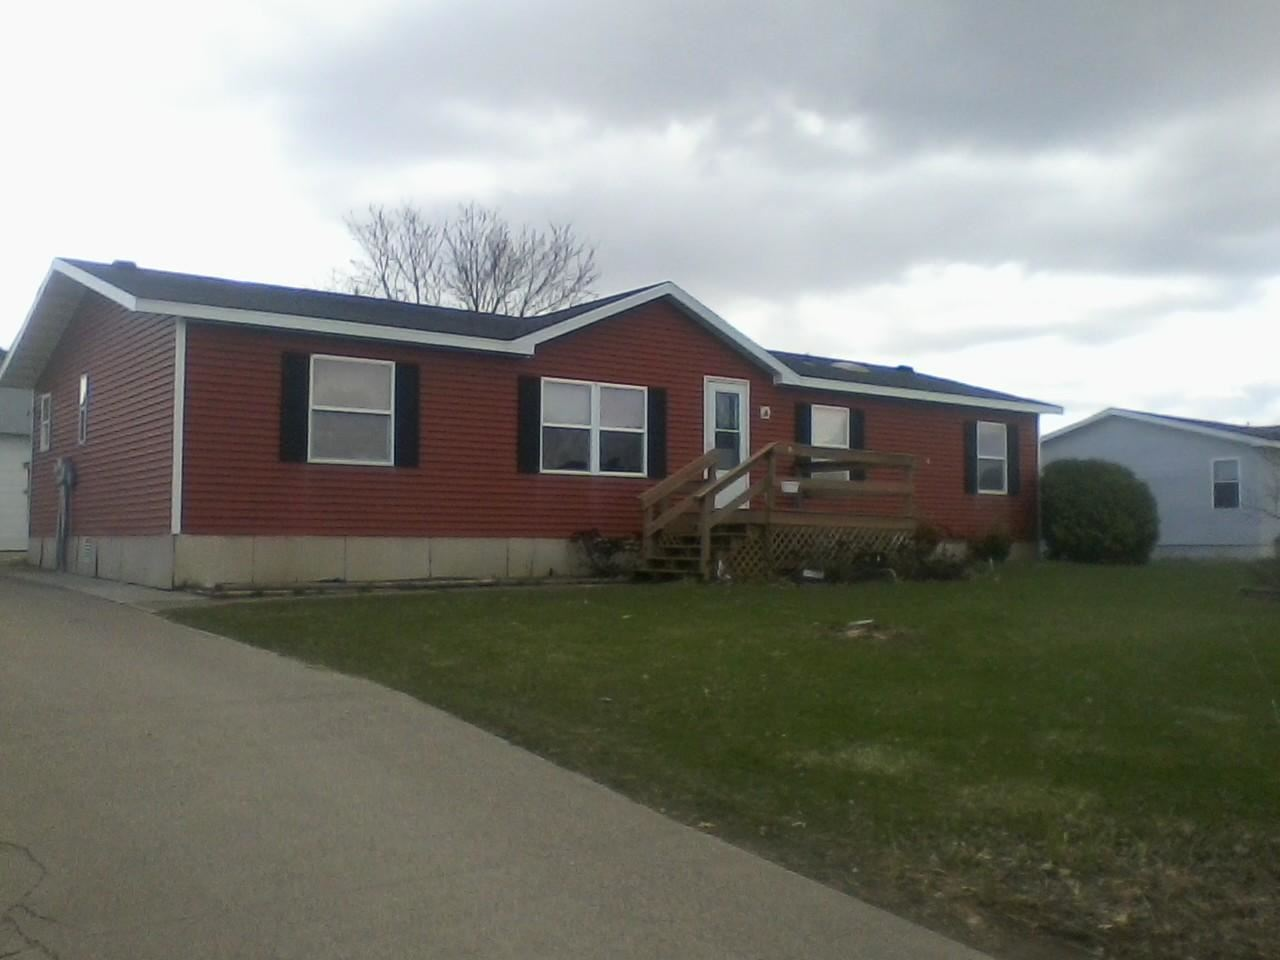 315 Highland Ave, Taylor, WI 54659 - MLS#: 1684630